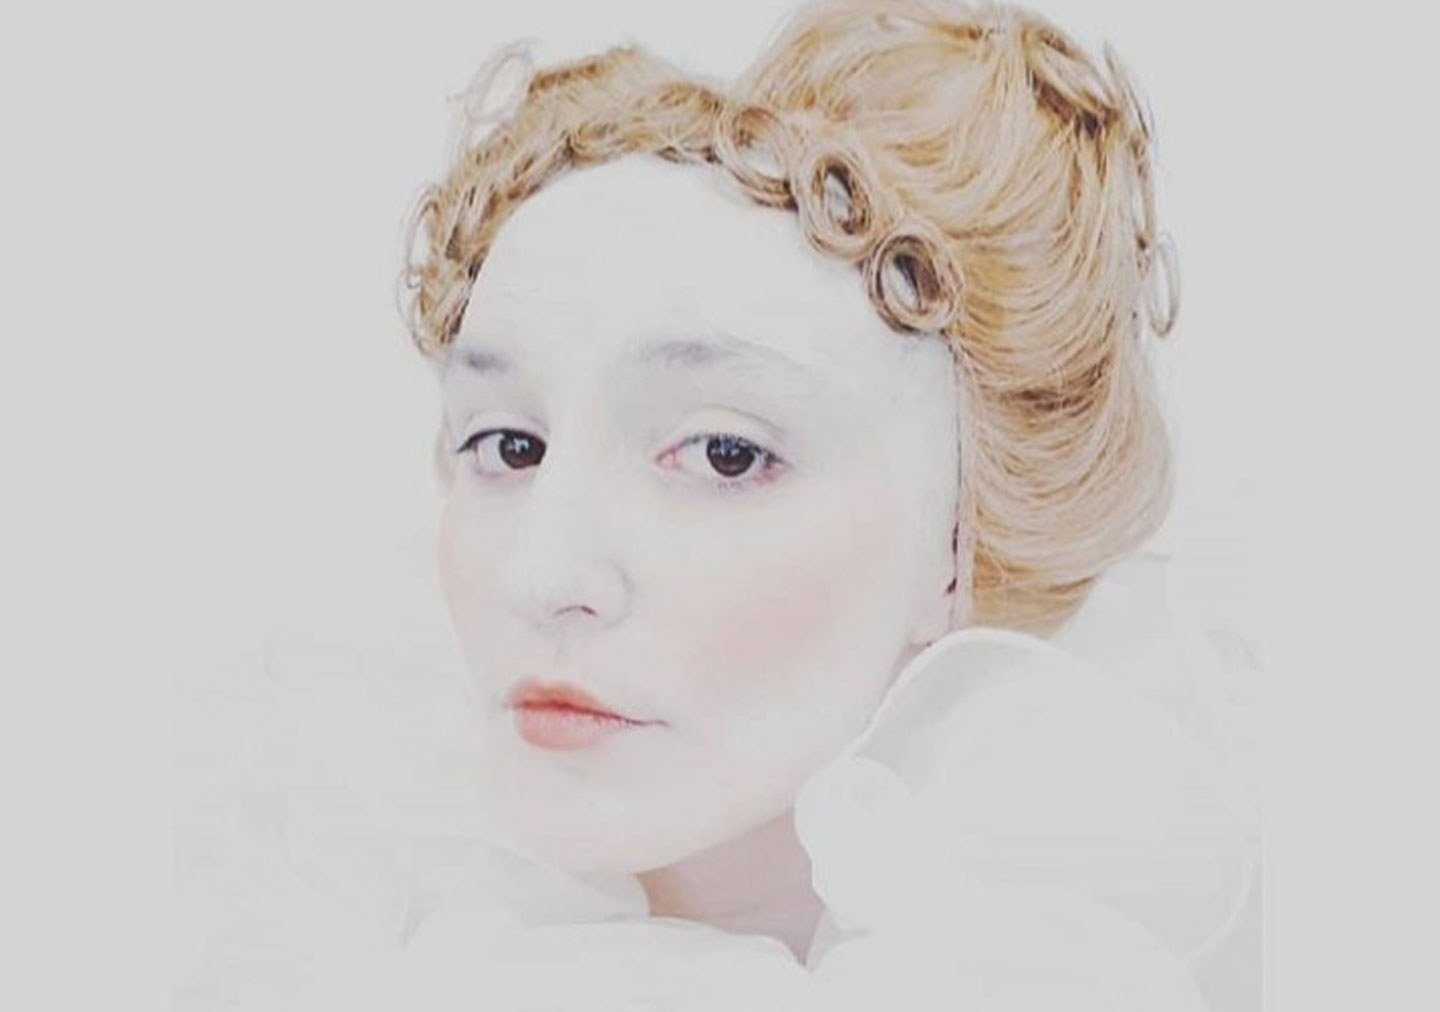 Elizabethan final project model in photo has been styled